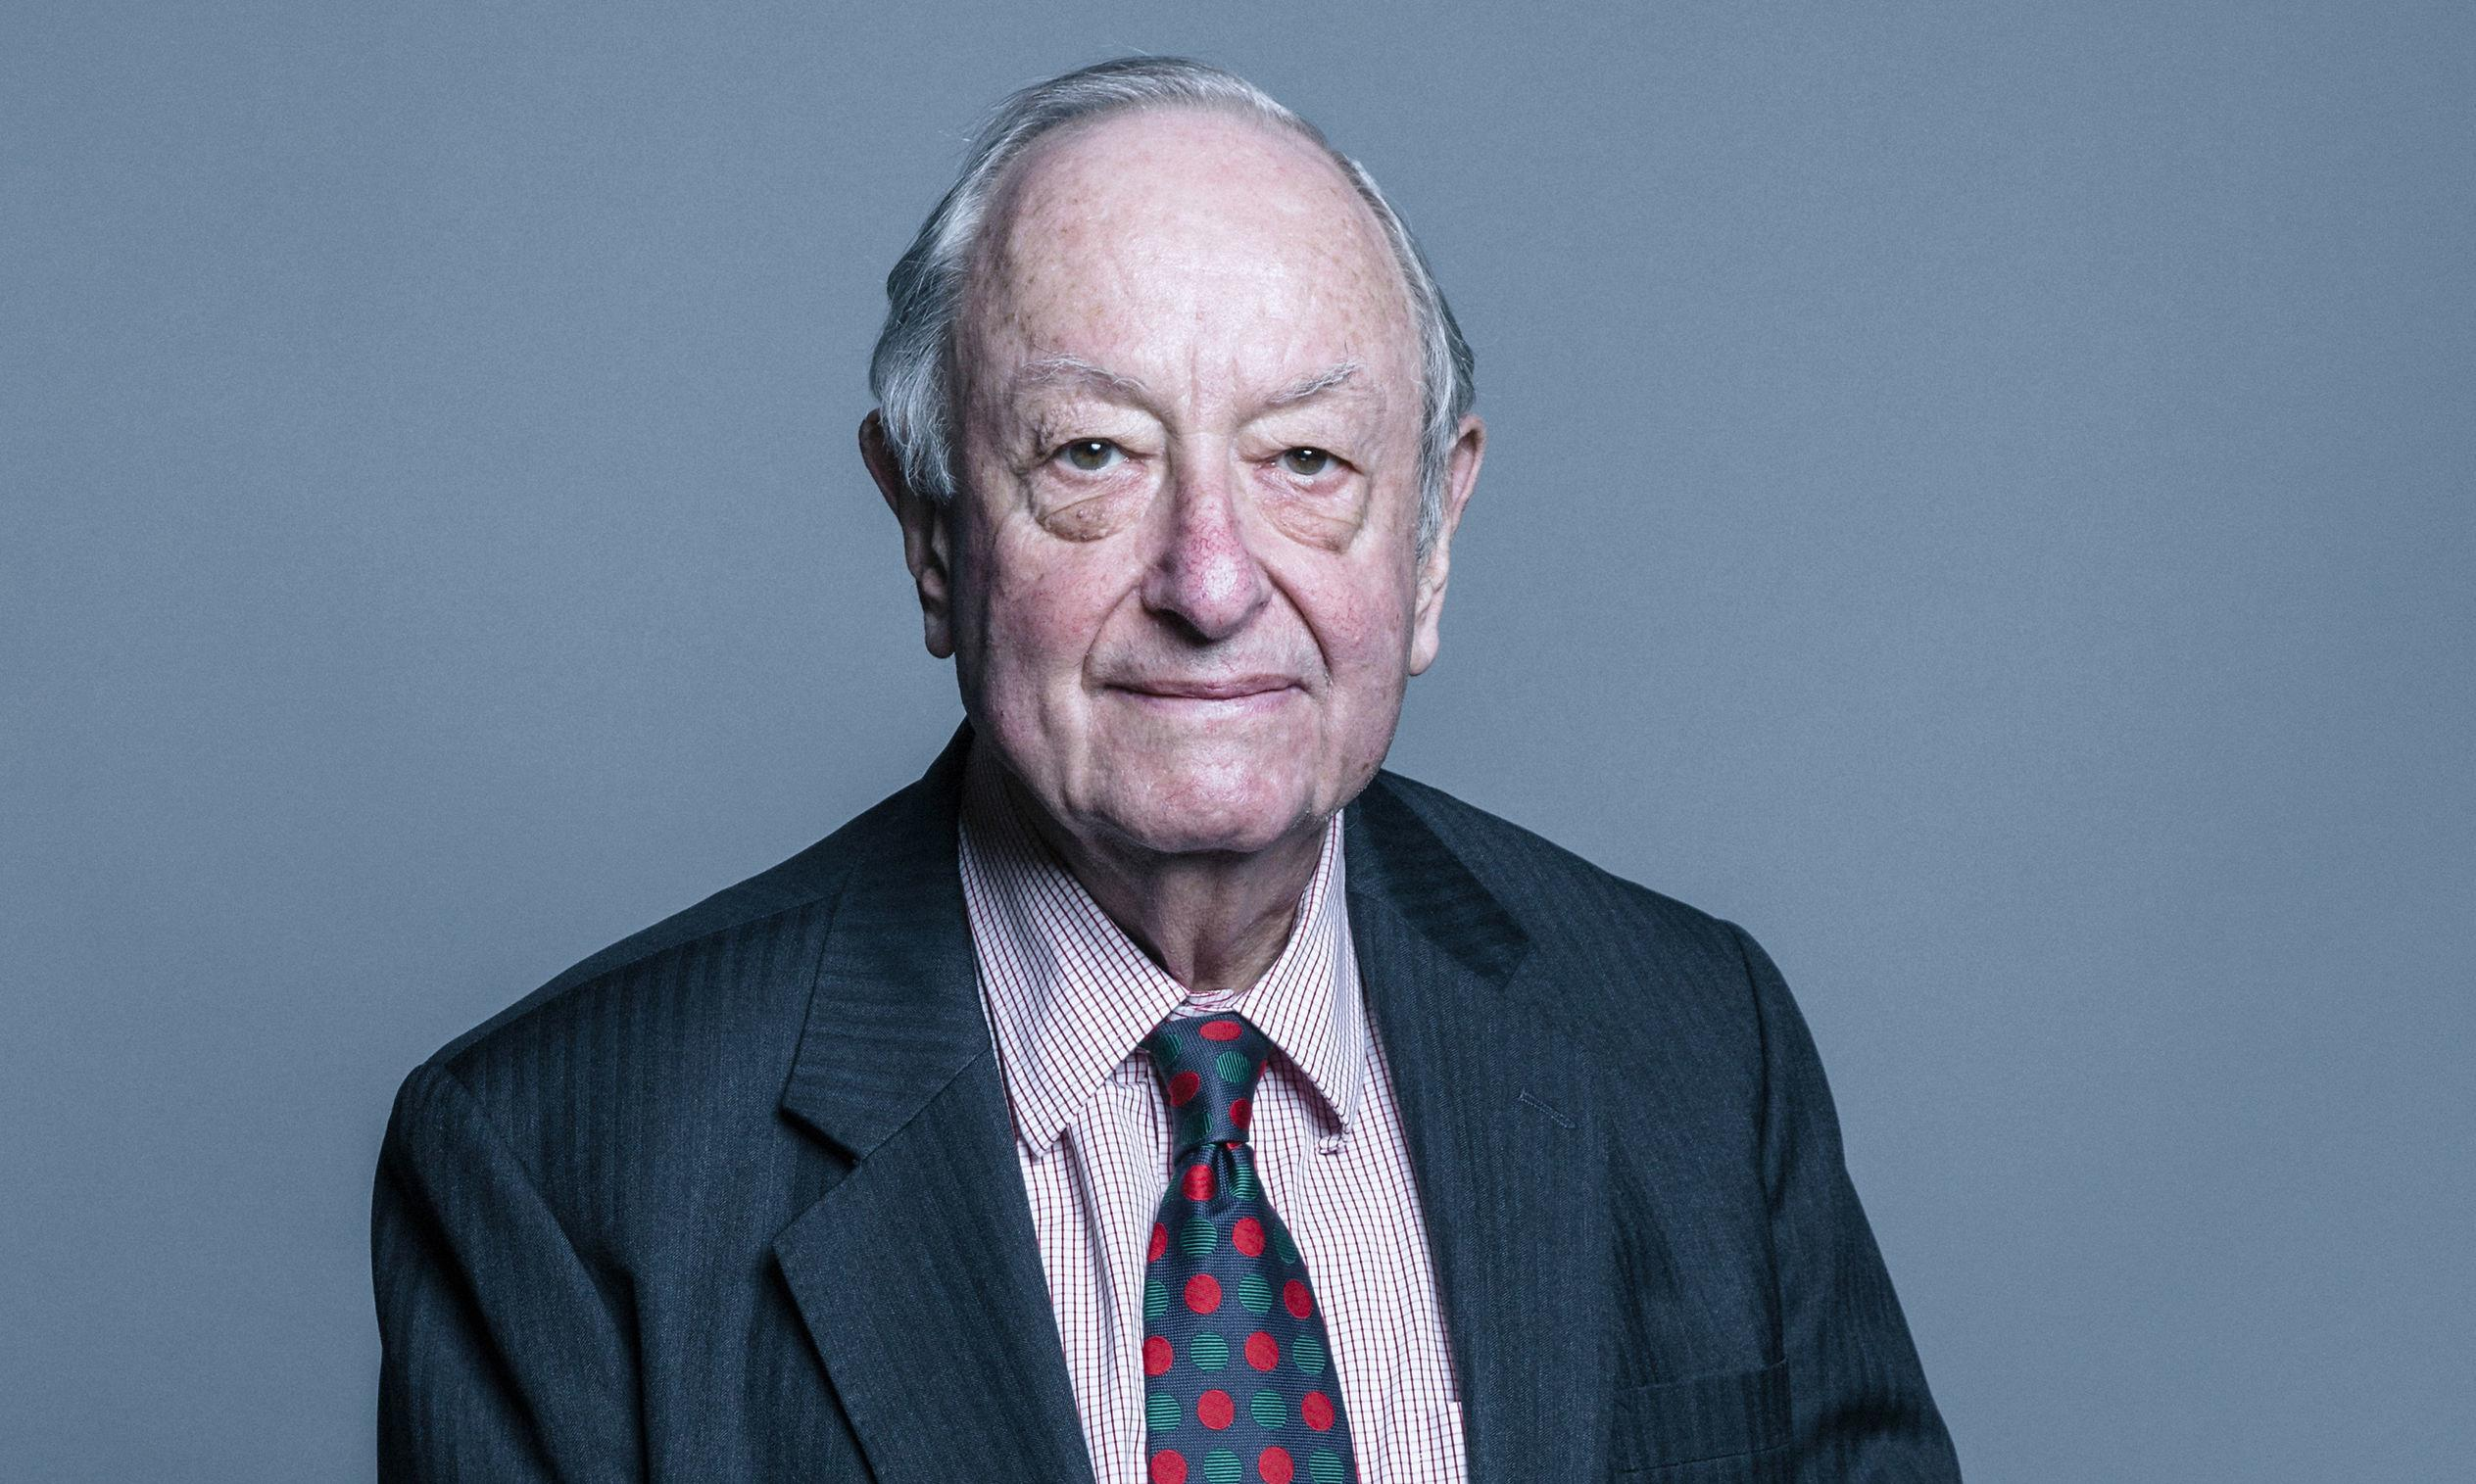 Lib Dem peer Lord Lester suspended over sexual harassment